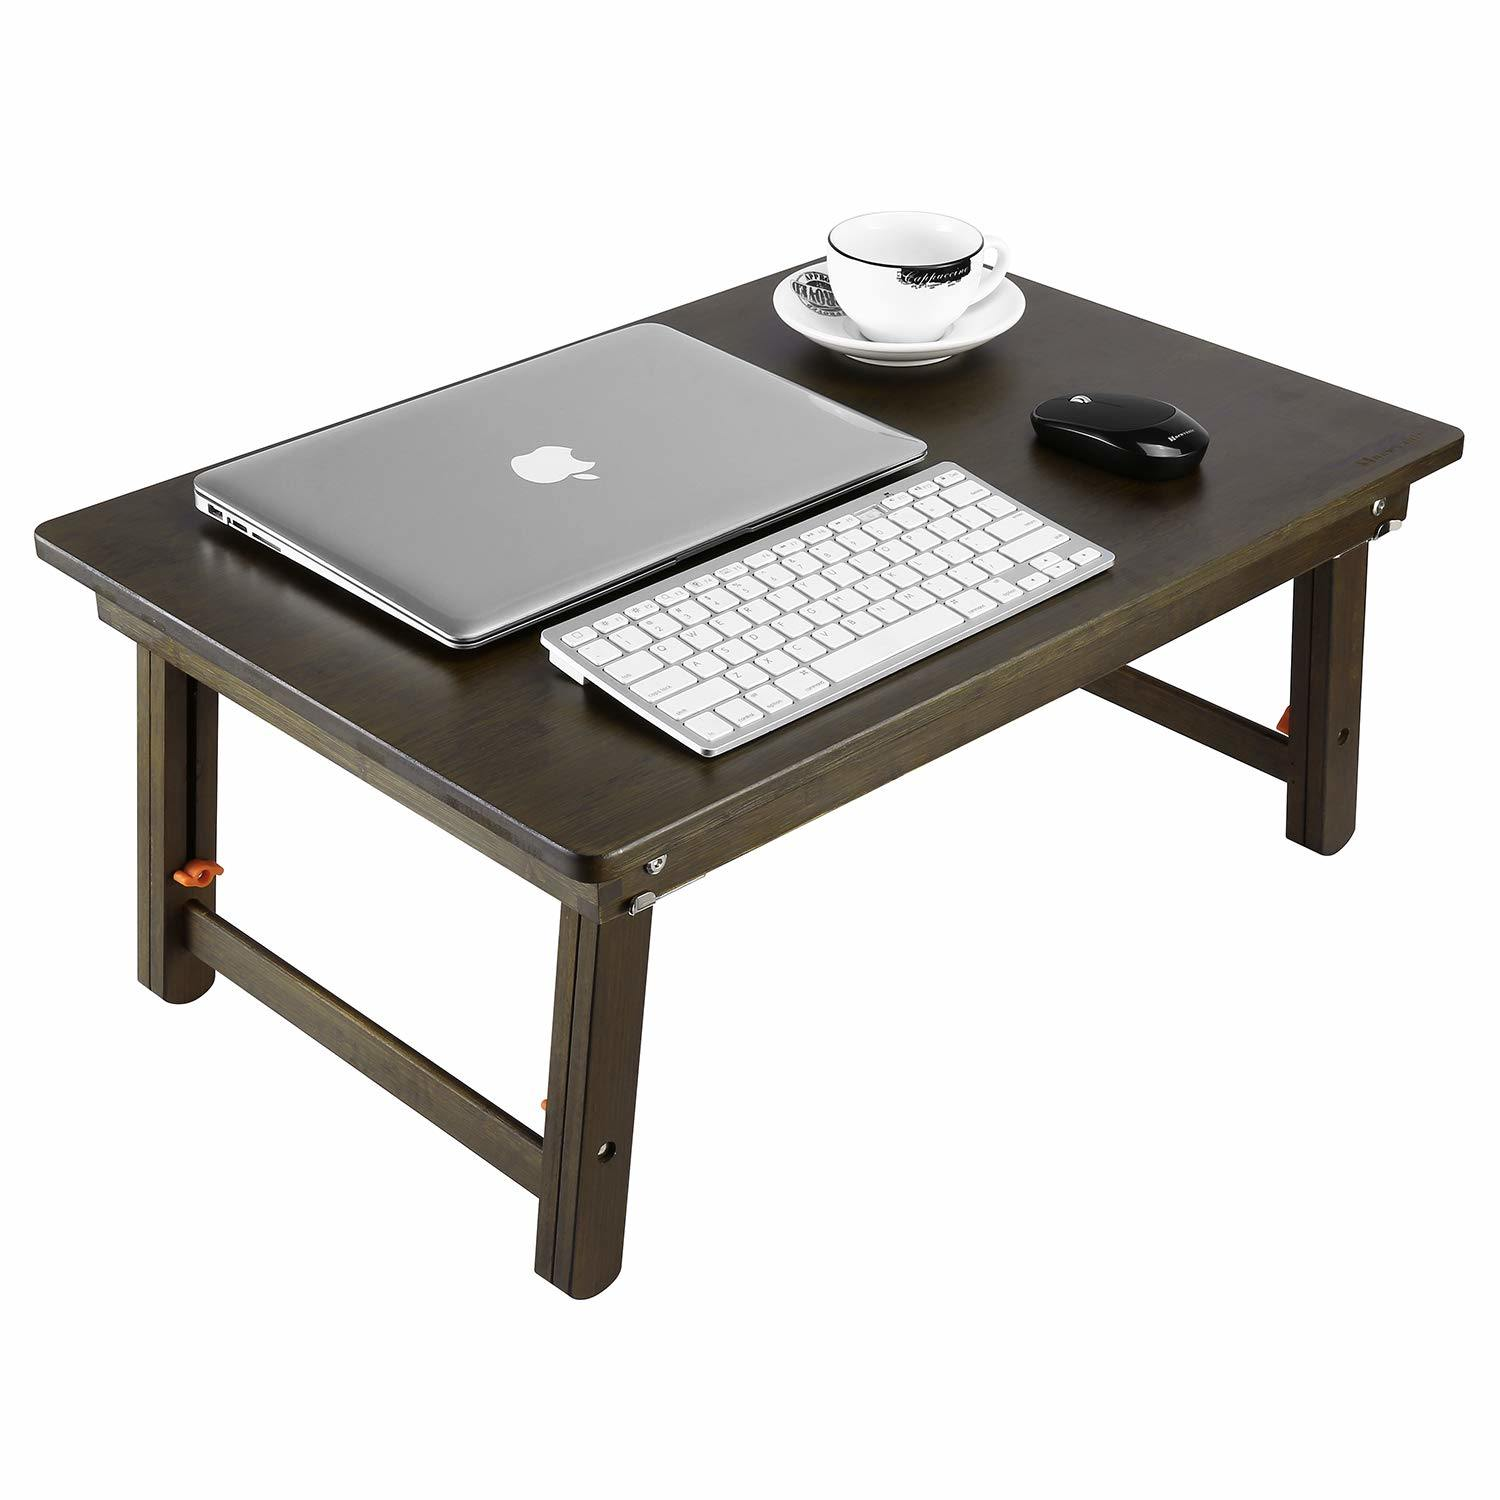 Picture of: Large Size Laptop Tray Desk Foldable Lap Table Bed Tray Bamboo Adjustable Breakfast Serving Tray Dark Brown China Laptop Tray Desk Foldable Lap Table Bed Tray Made In China Com